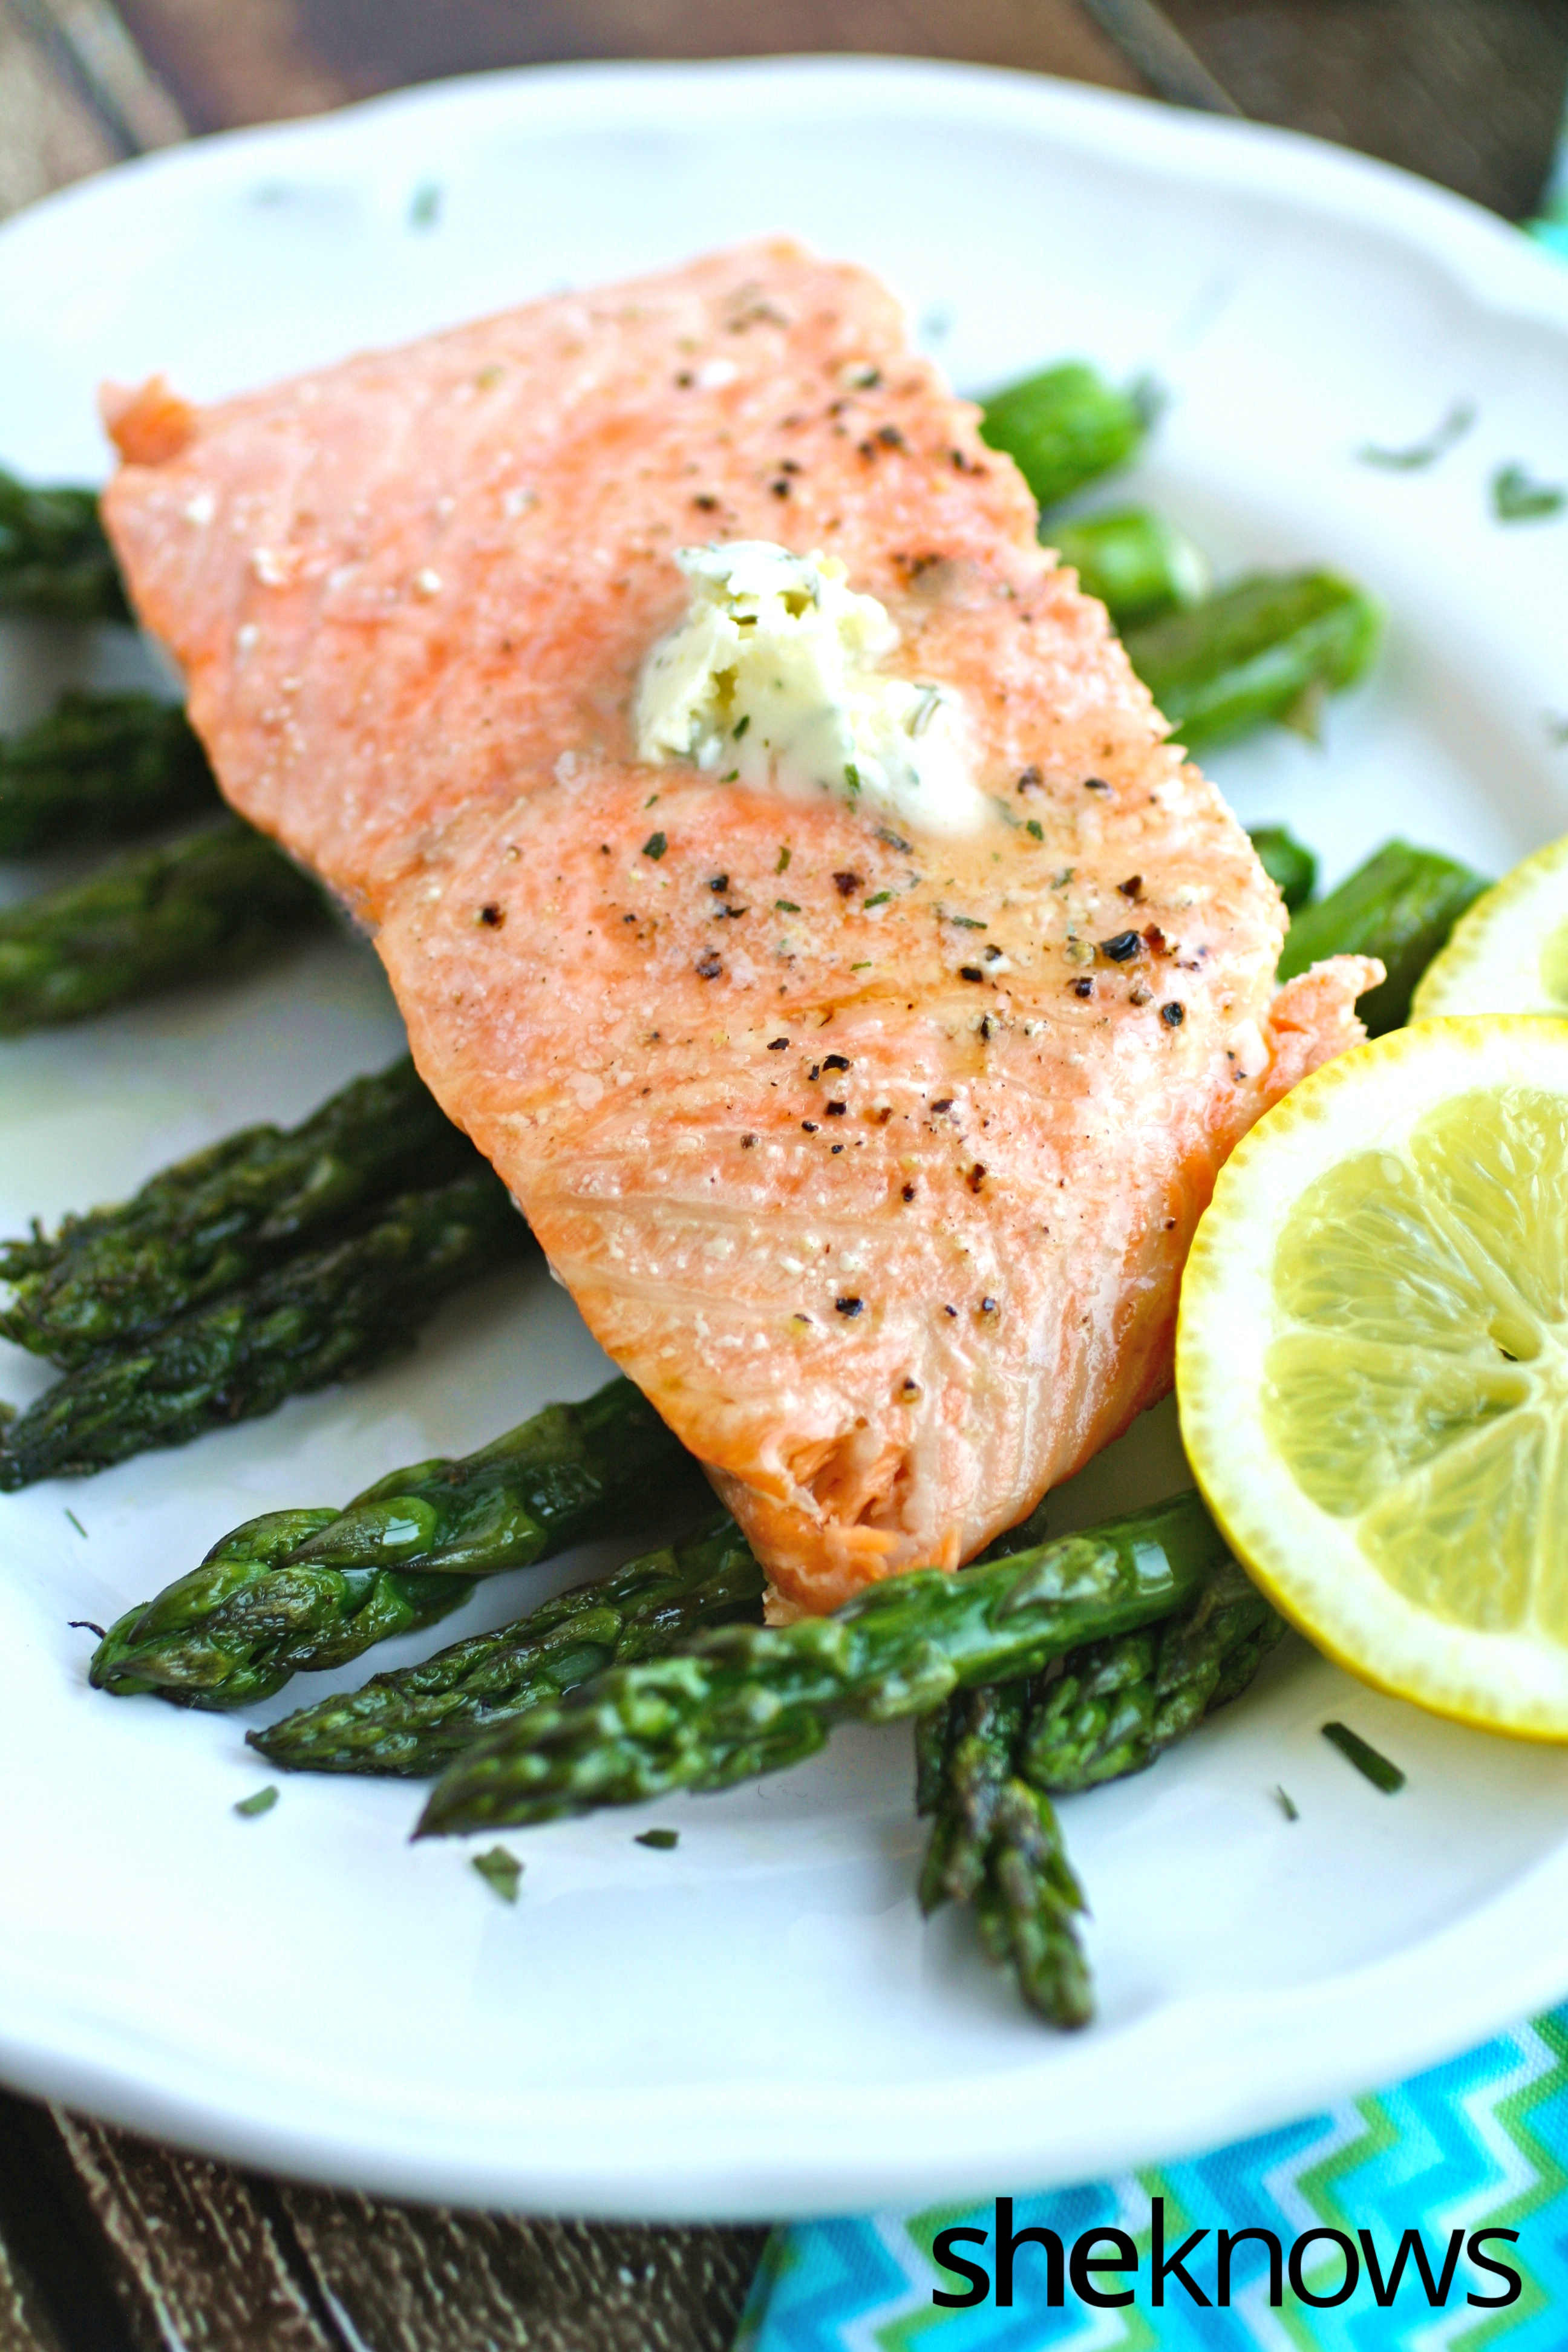 This dish is fabulous! Easy oven-baked salmon with asparagus and lemon-tarragon butter is a delight.